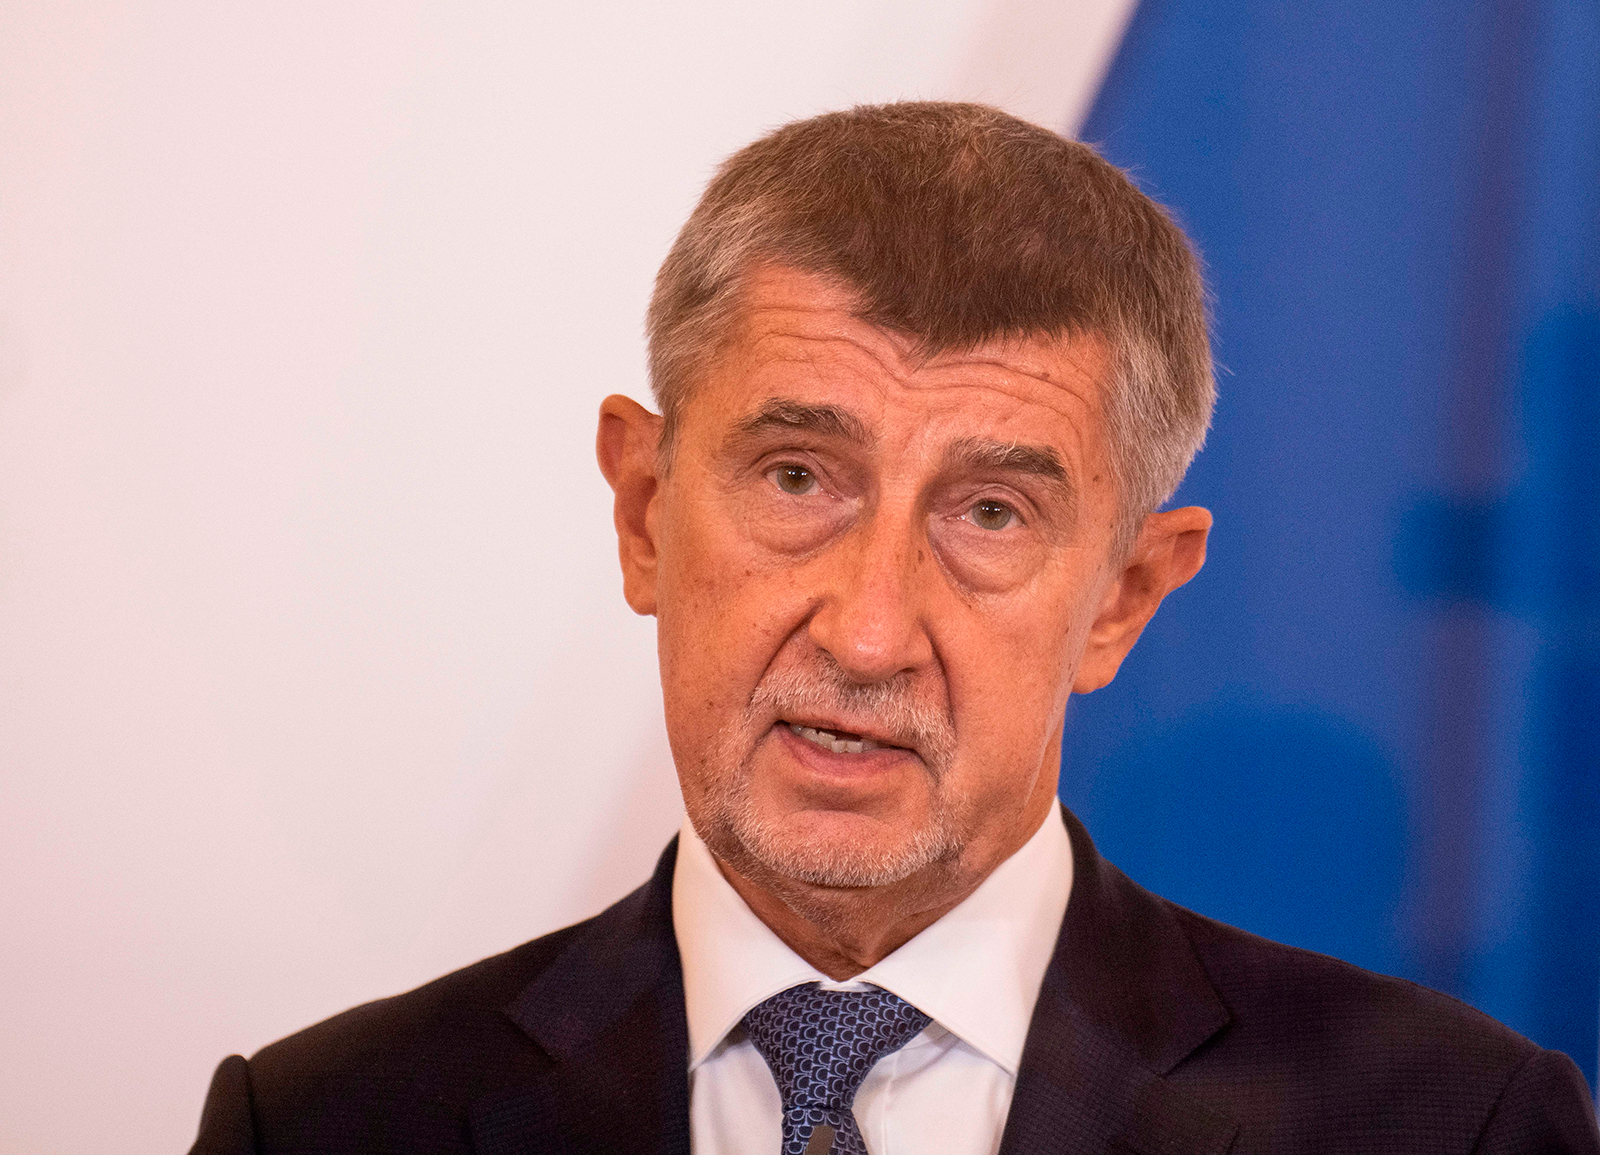 Czech Prime minister Andrej Babis speaks during a news conference at the Austrian chancellery in Vienna, Austria, on September 9.